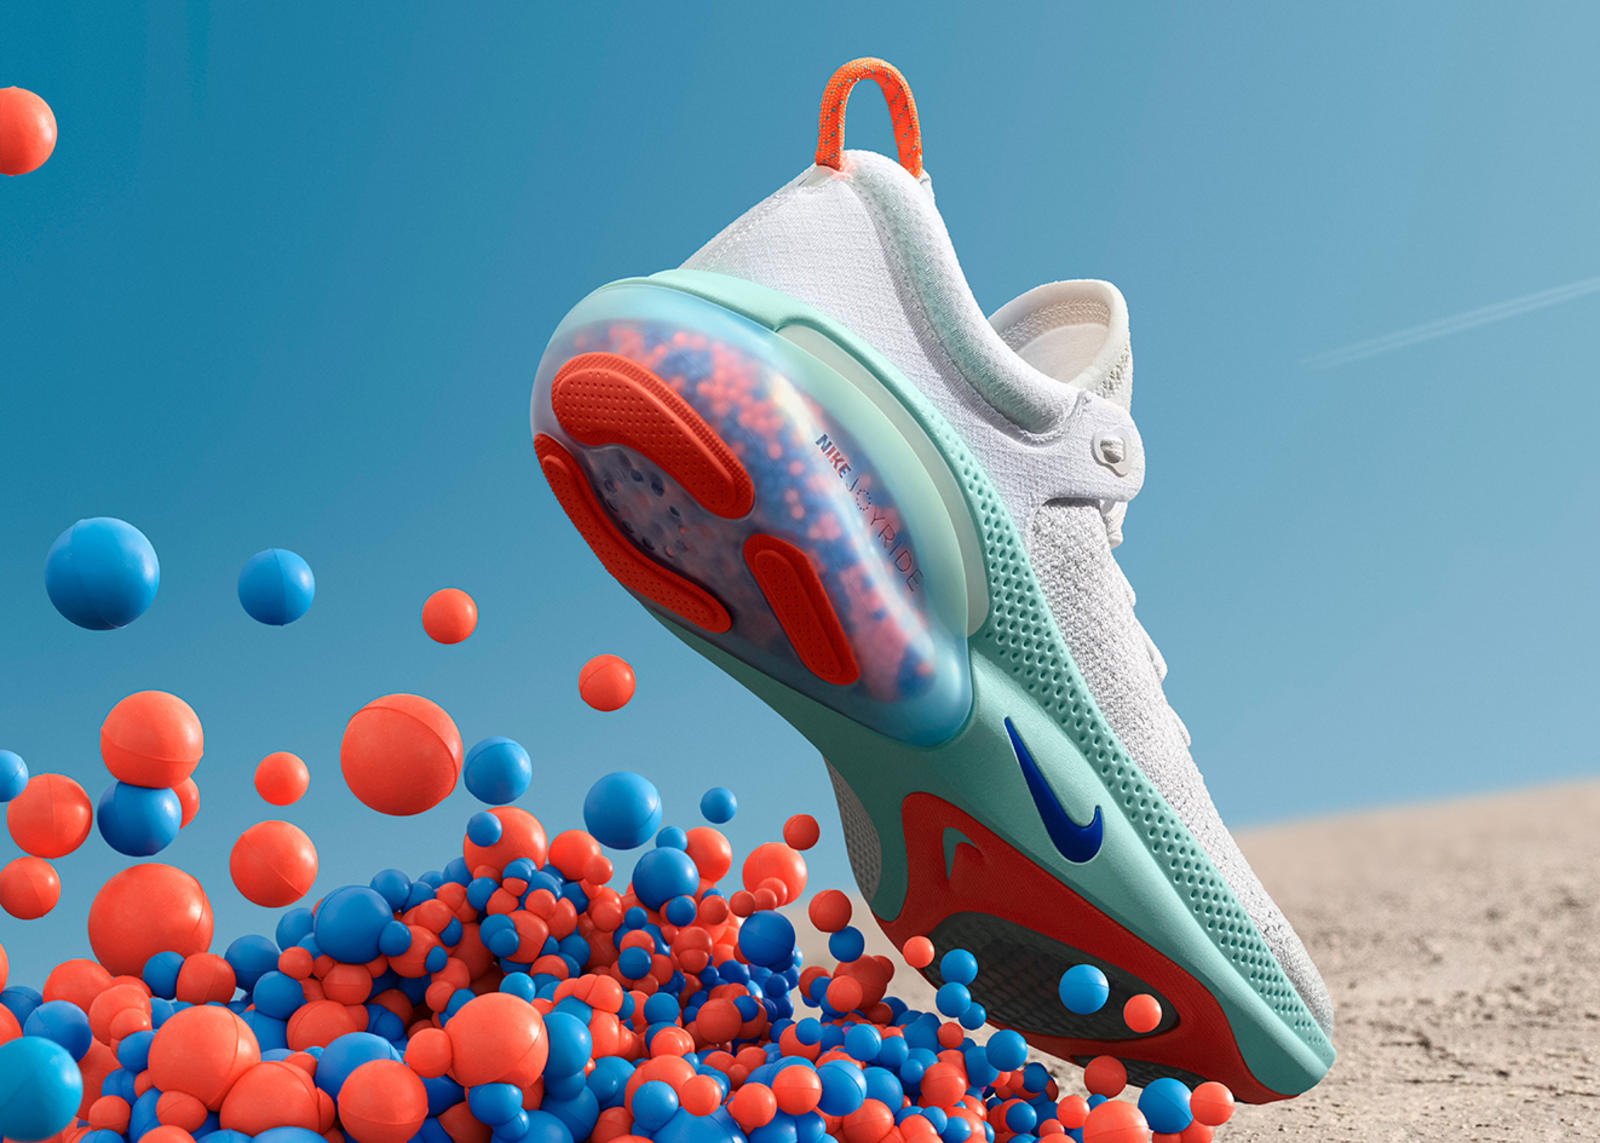 Nike Joyride Cushioning System Made Of Thousands Of TPE Beads